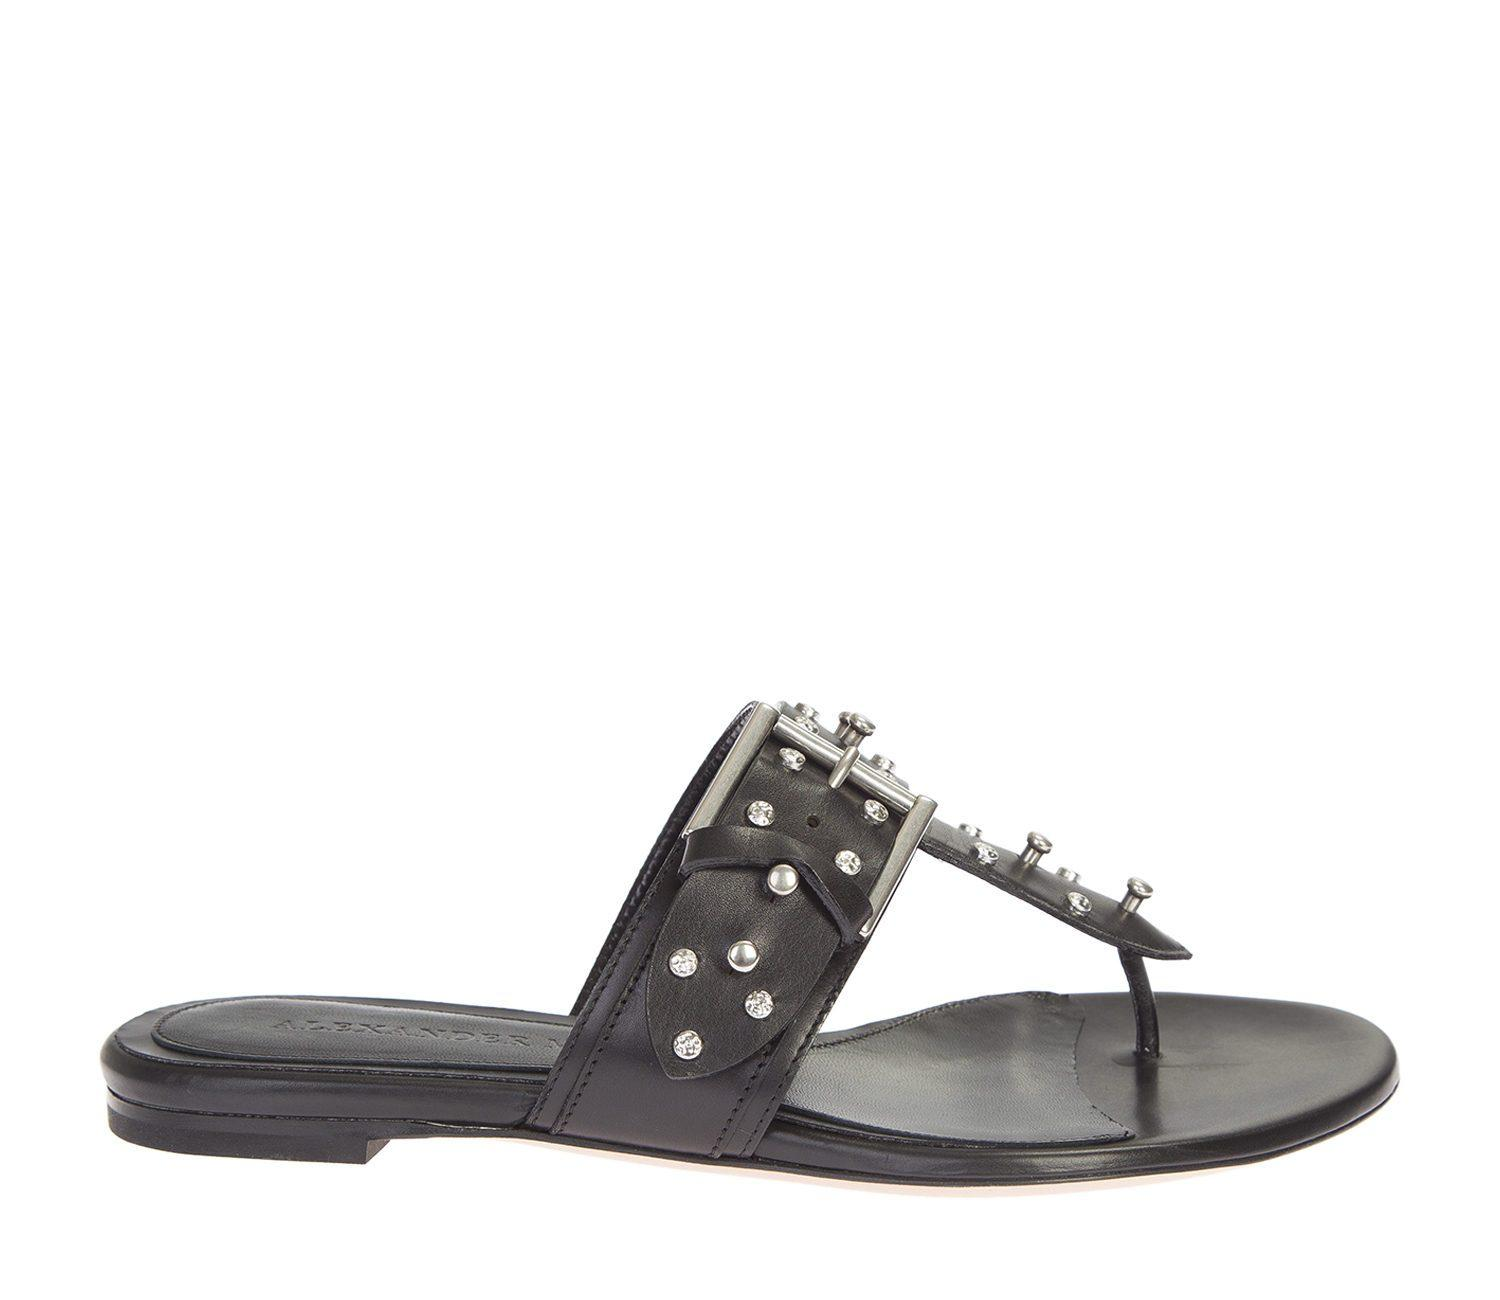 Lyst Alexander Mcqueen Black Leather Hobnail Sandals In